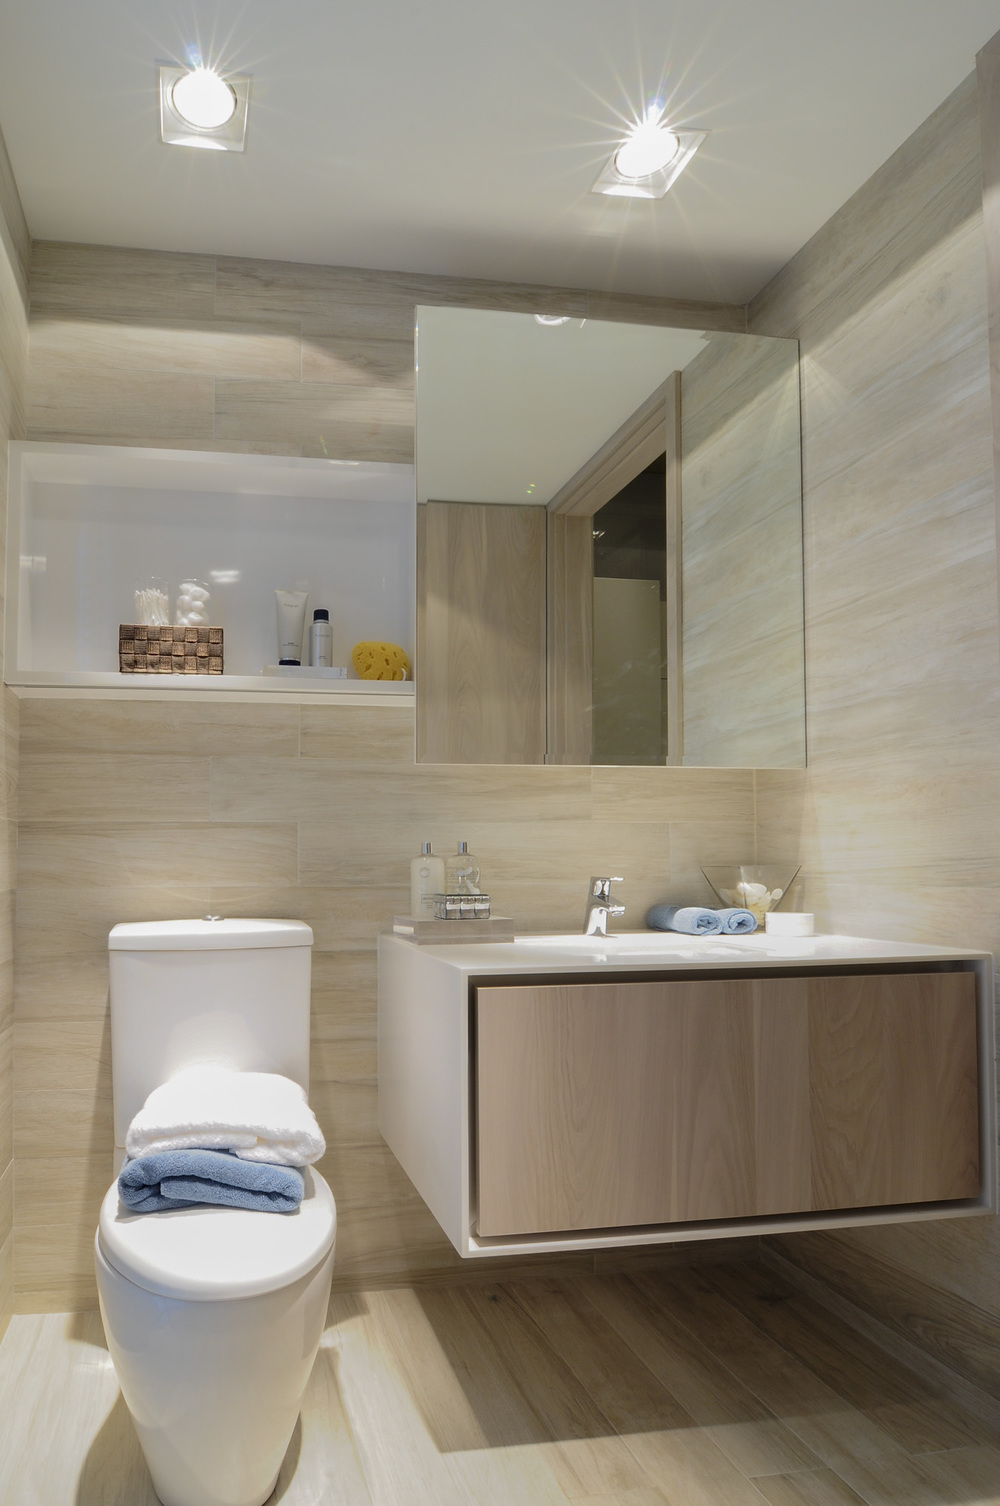 Jurong Gateway Interior 4 bathroom